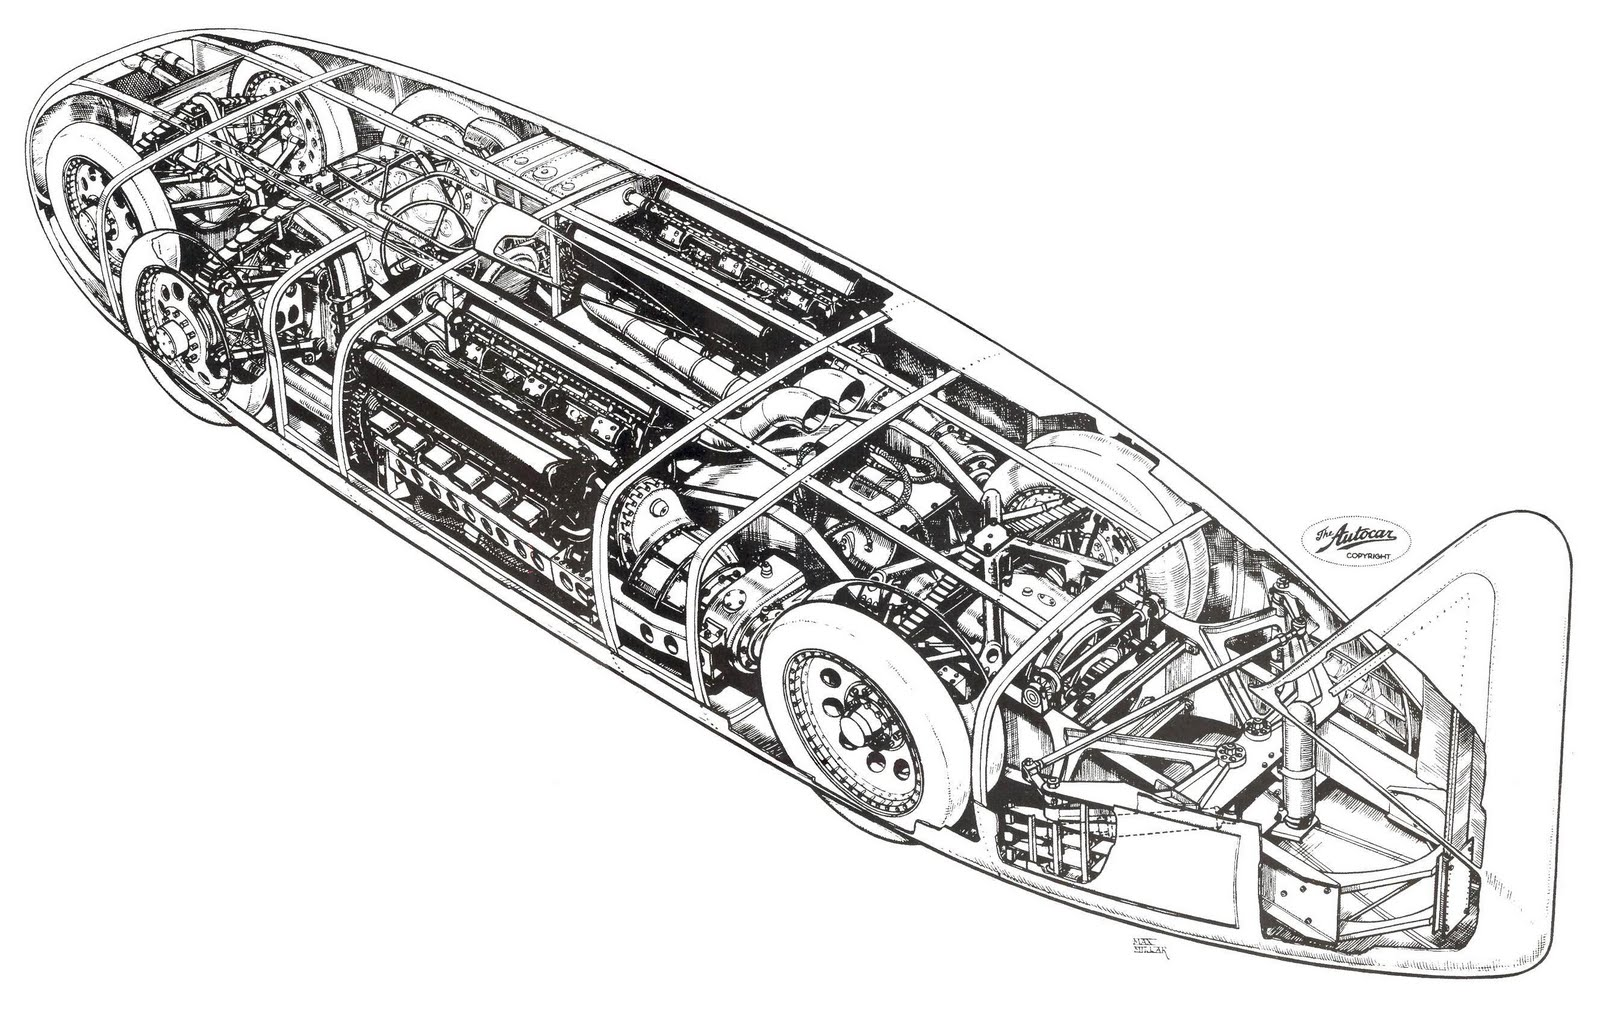 Scootermcrad S Whatchaworks Cutaway Illustrations